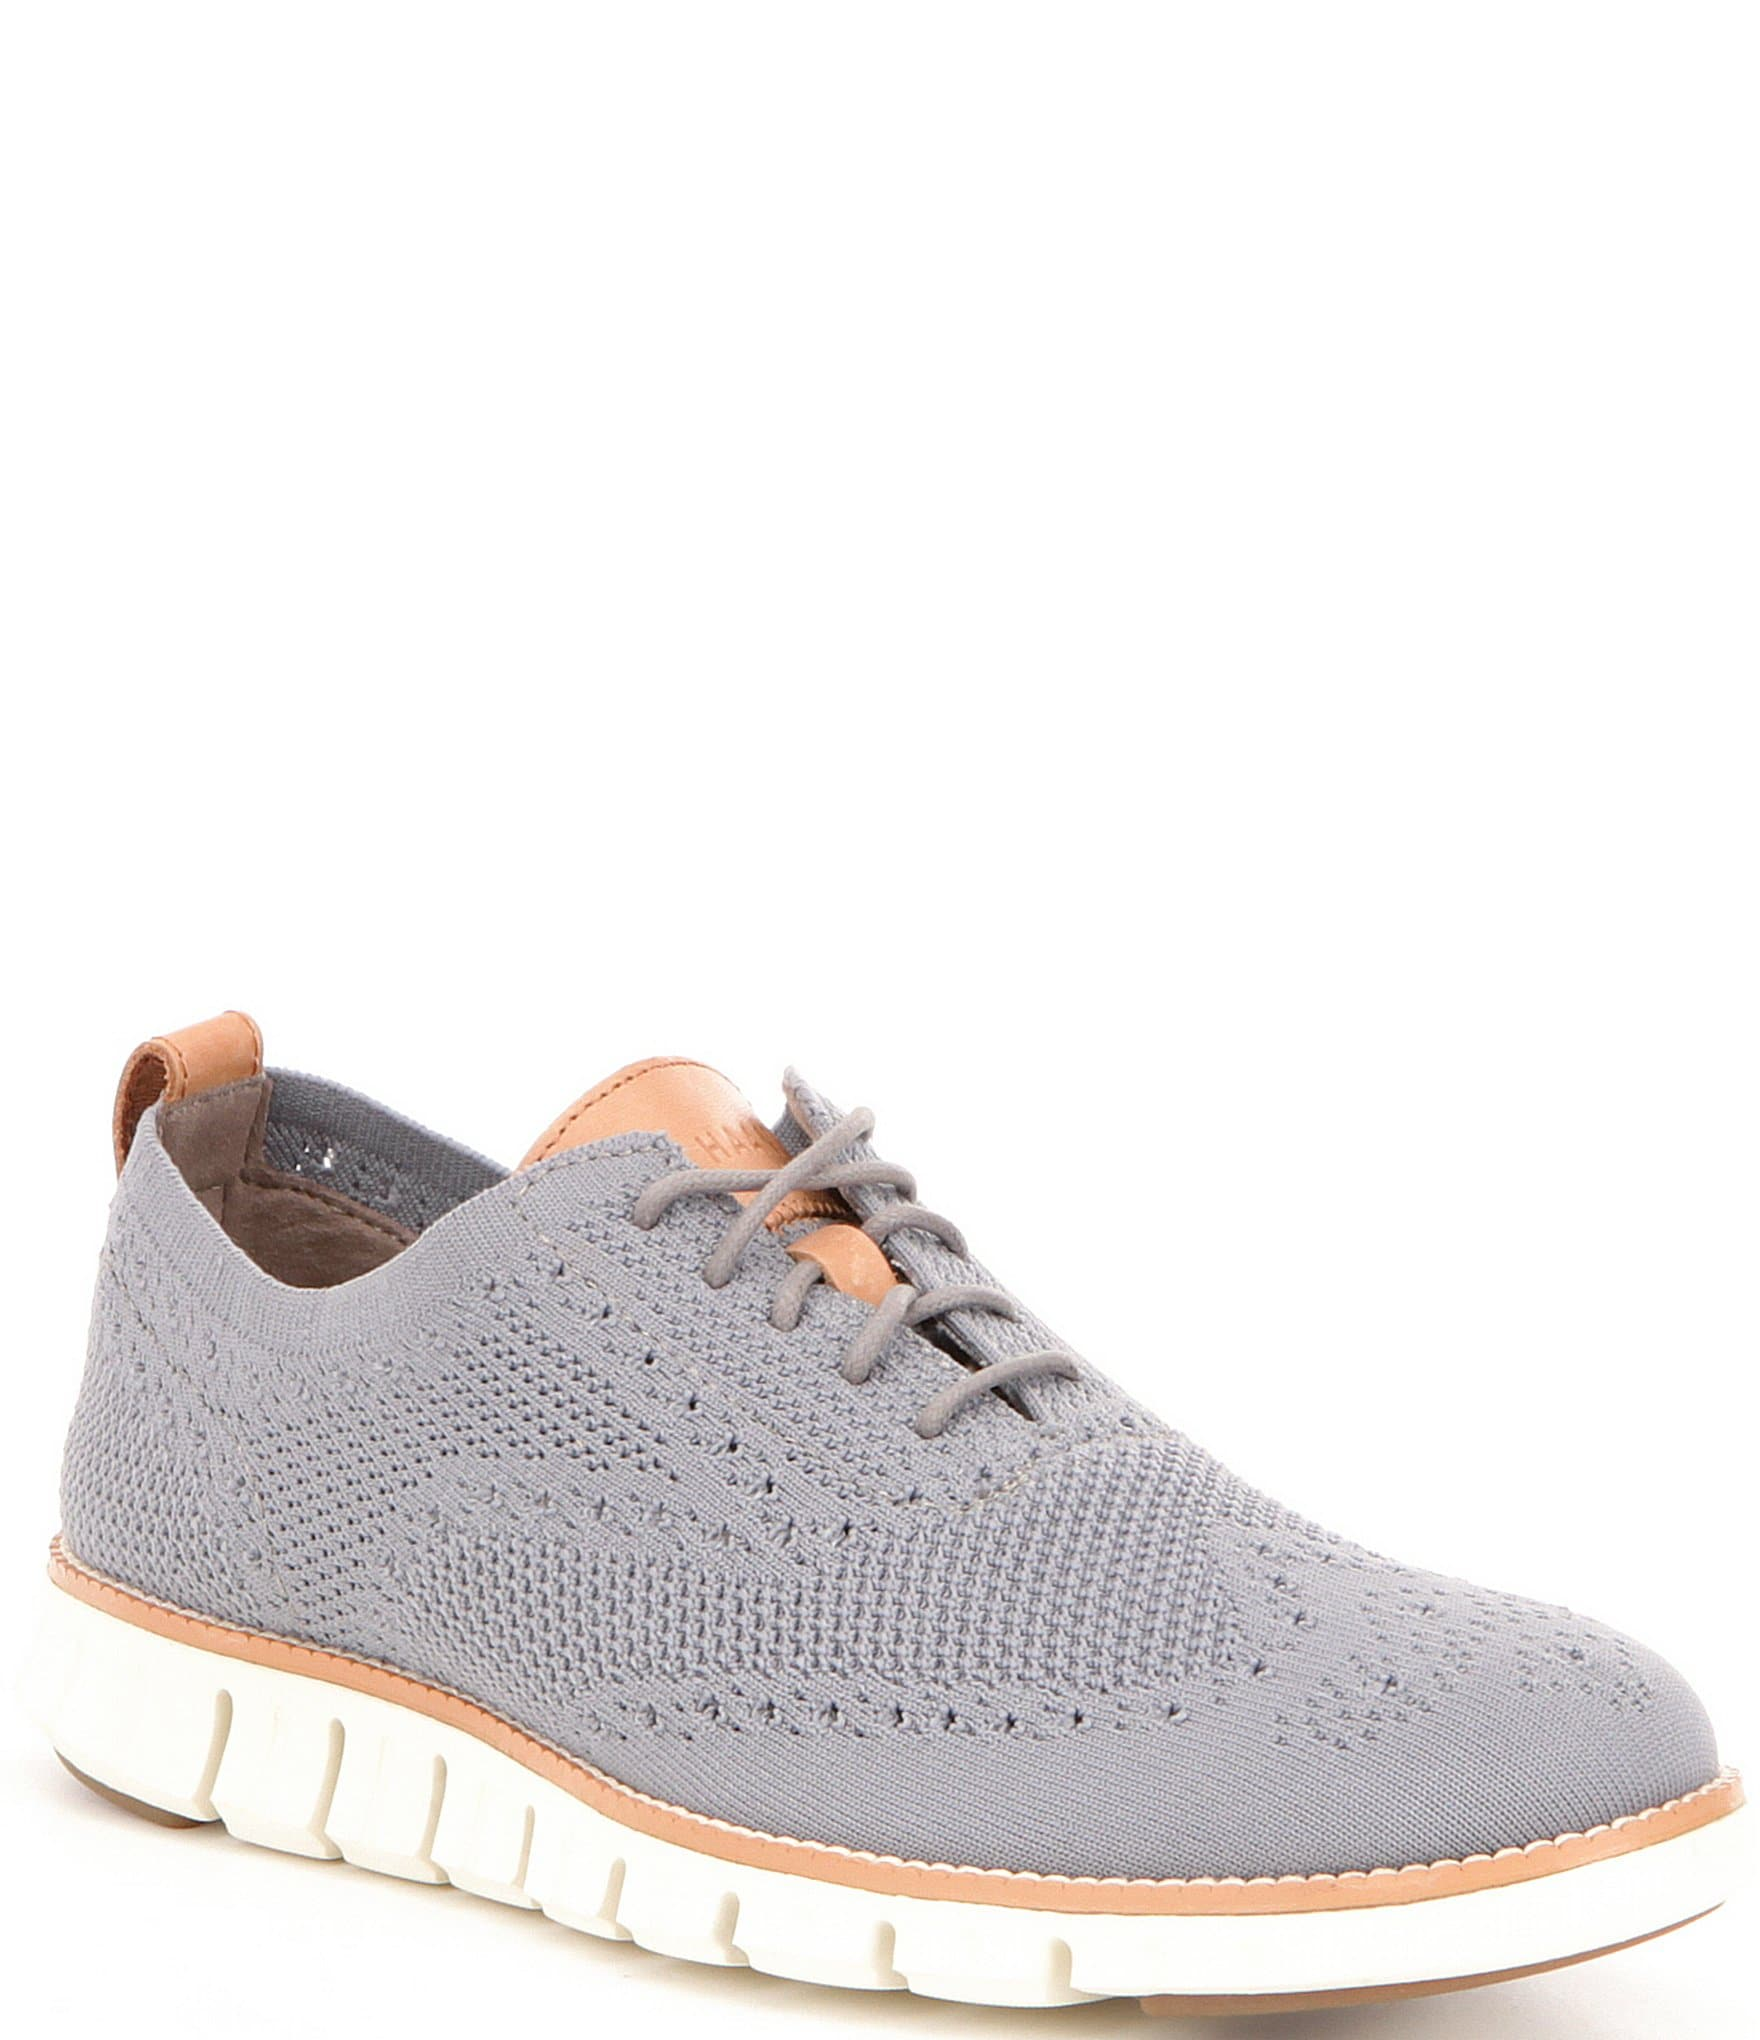 92d9823f337 Cole Haan Men s Shoes